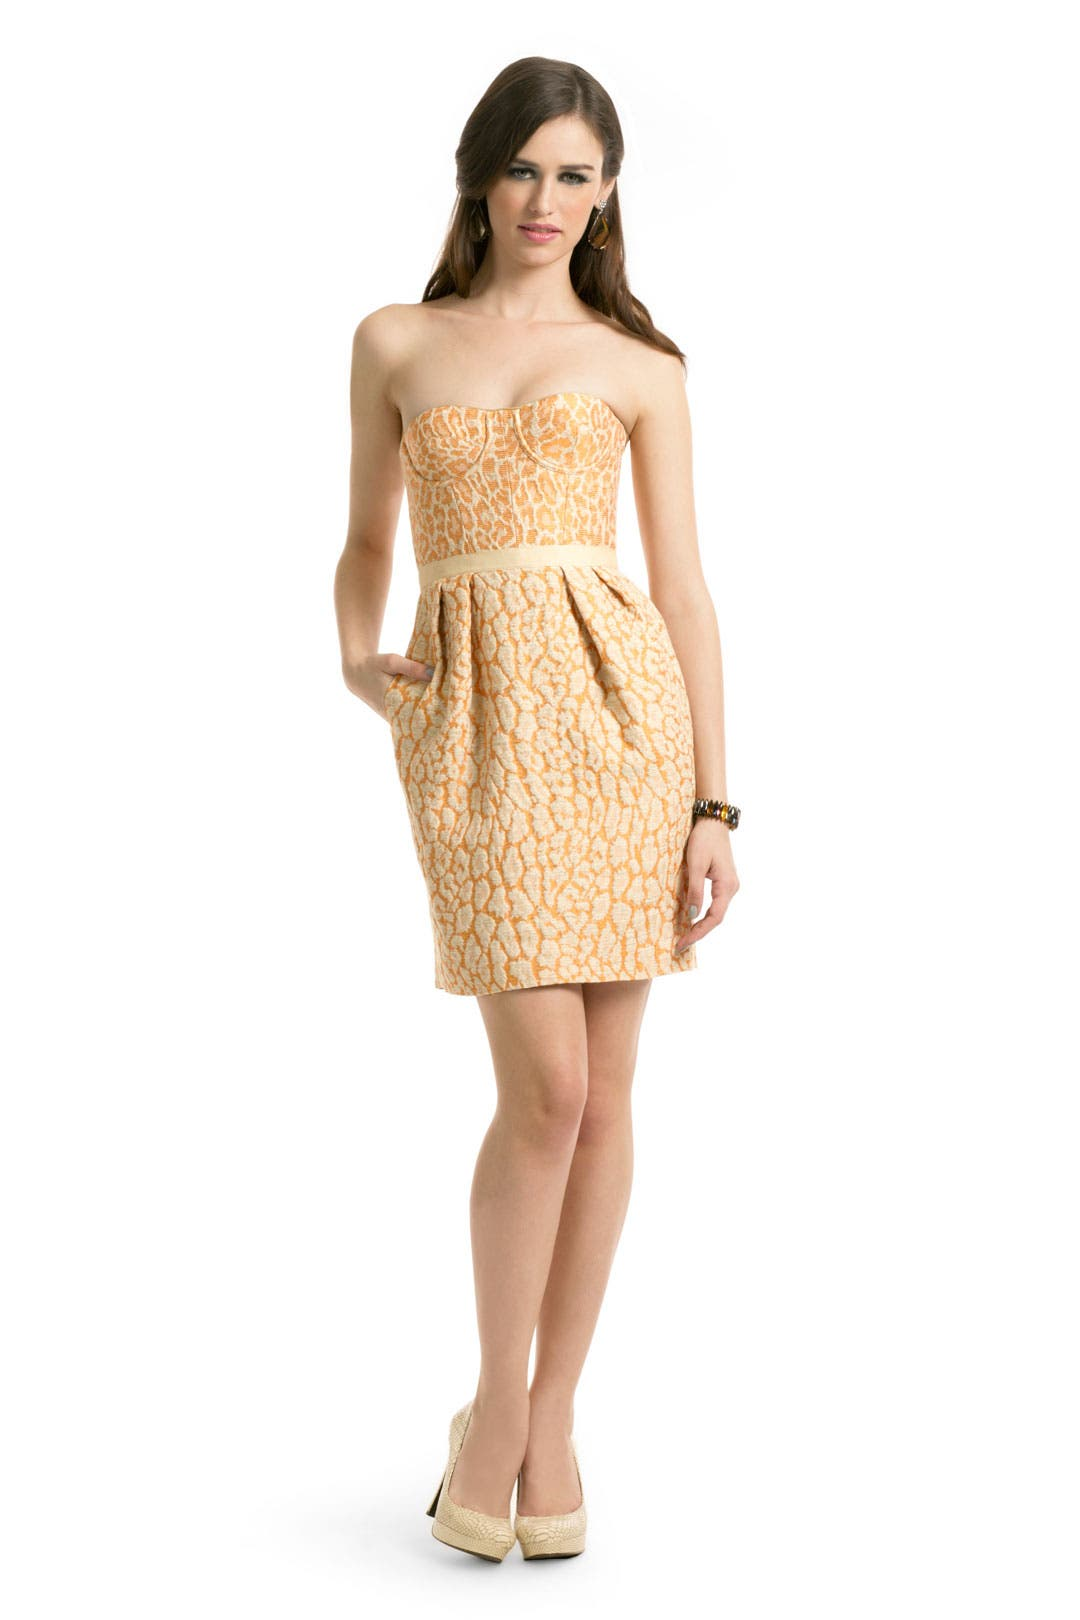 Naranja Leopard Dress by Matthew Williamson